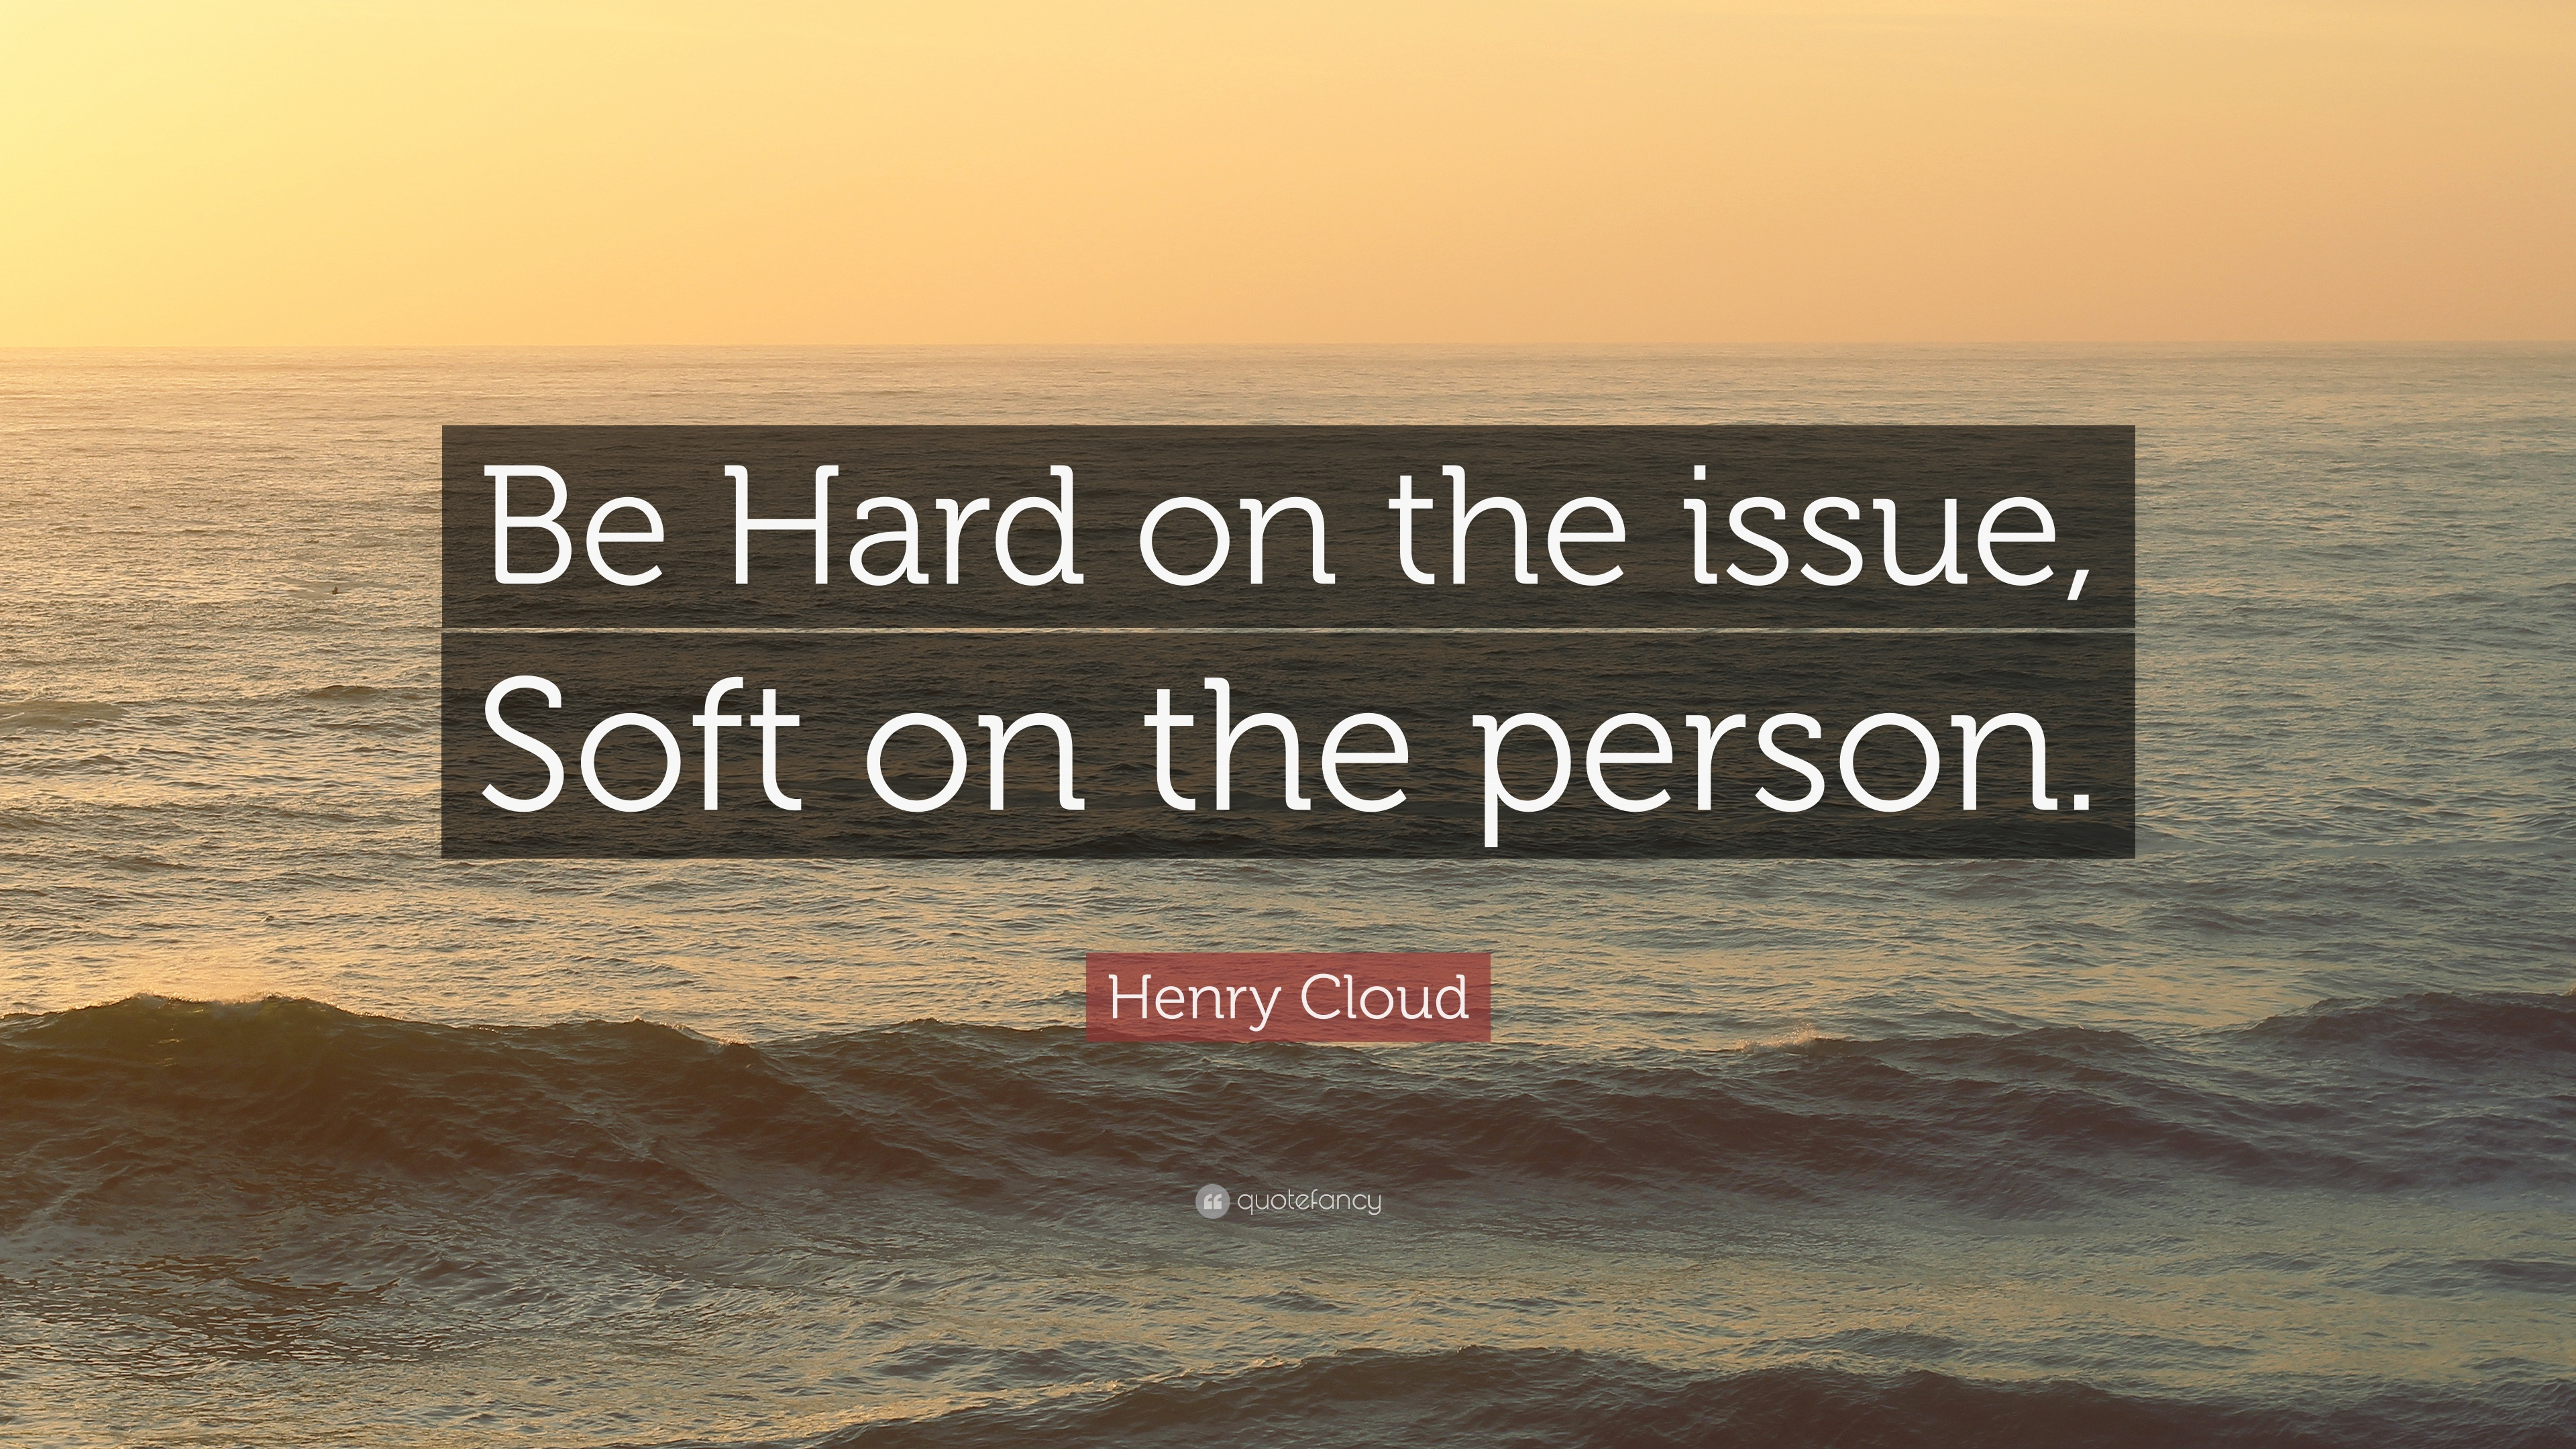 Cloud Quotes Cool Henry Cloud Quotes 79 Wallpapers  Quotefancy